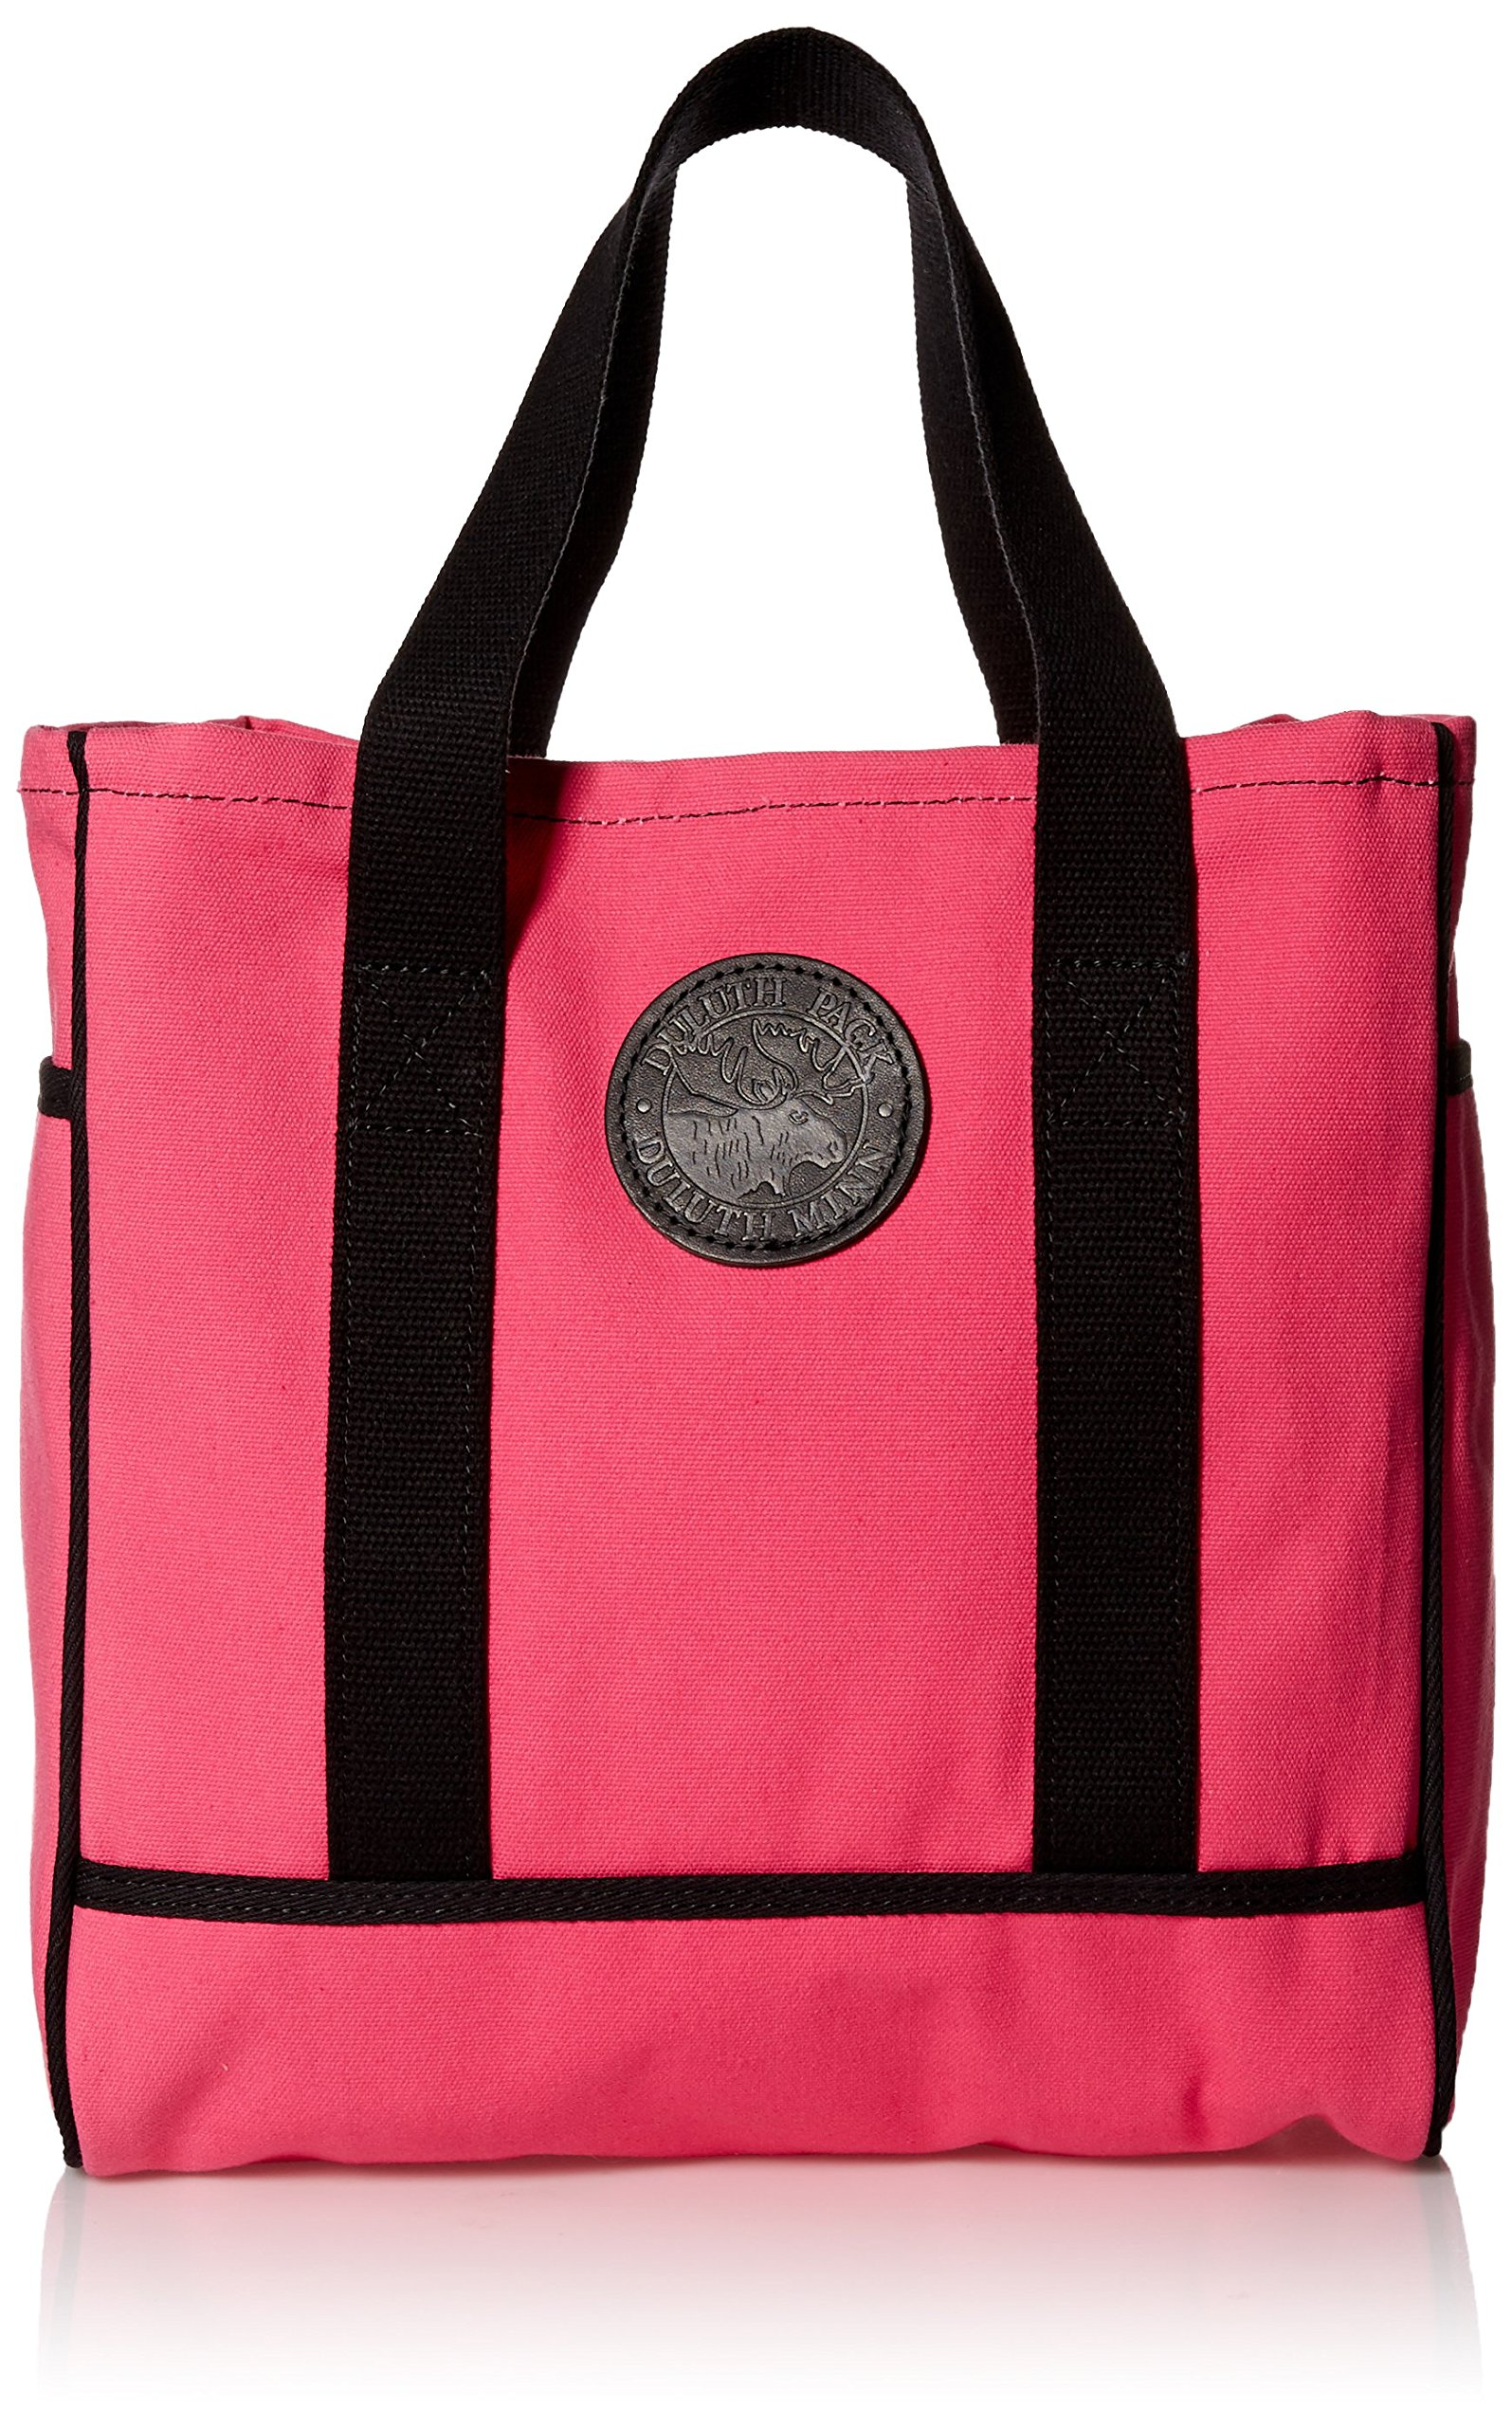 Duluth Pack Standard Tote, Pink, 13 x 13 x 9-Inch by Duluth Pack